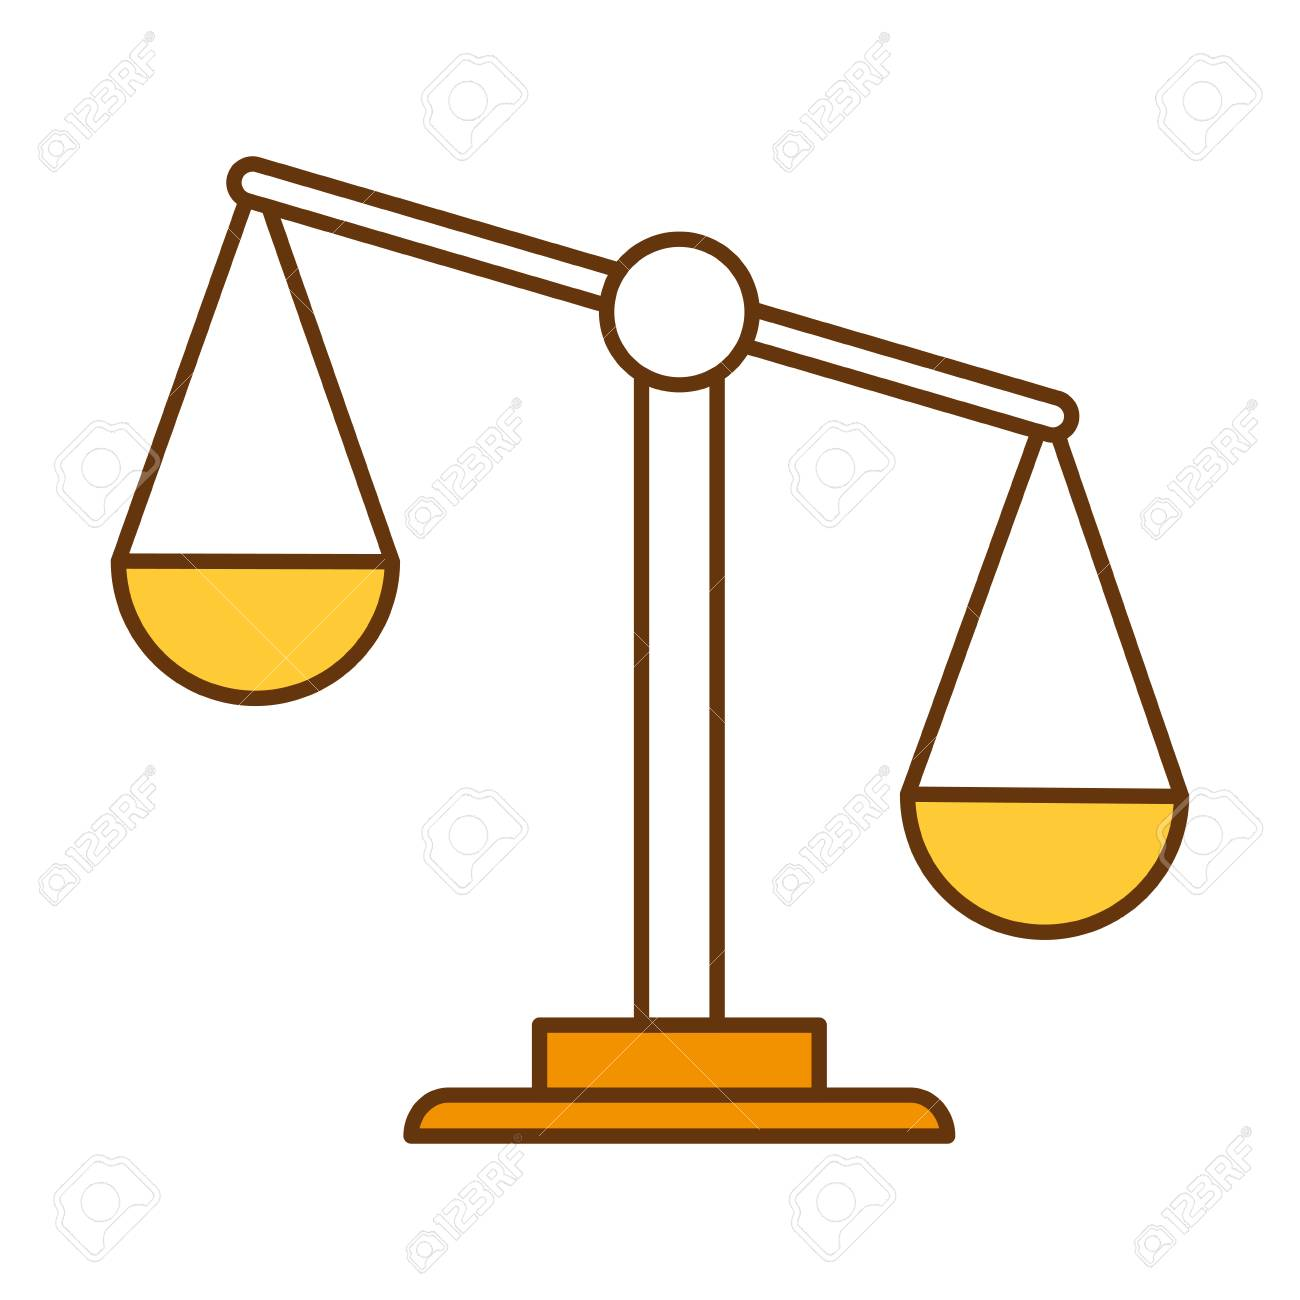 a weighing scale as a justice icon royalty free cliparts vectors